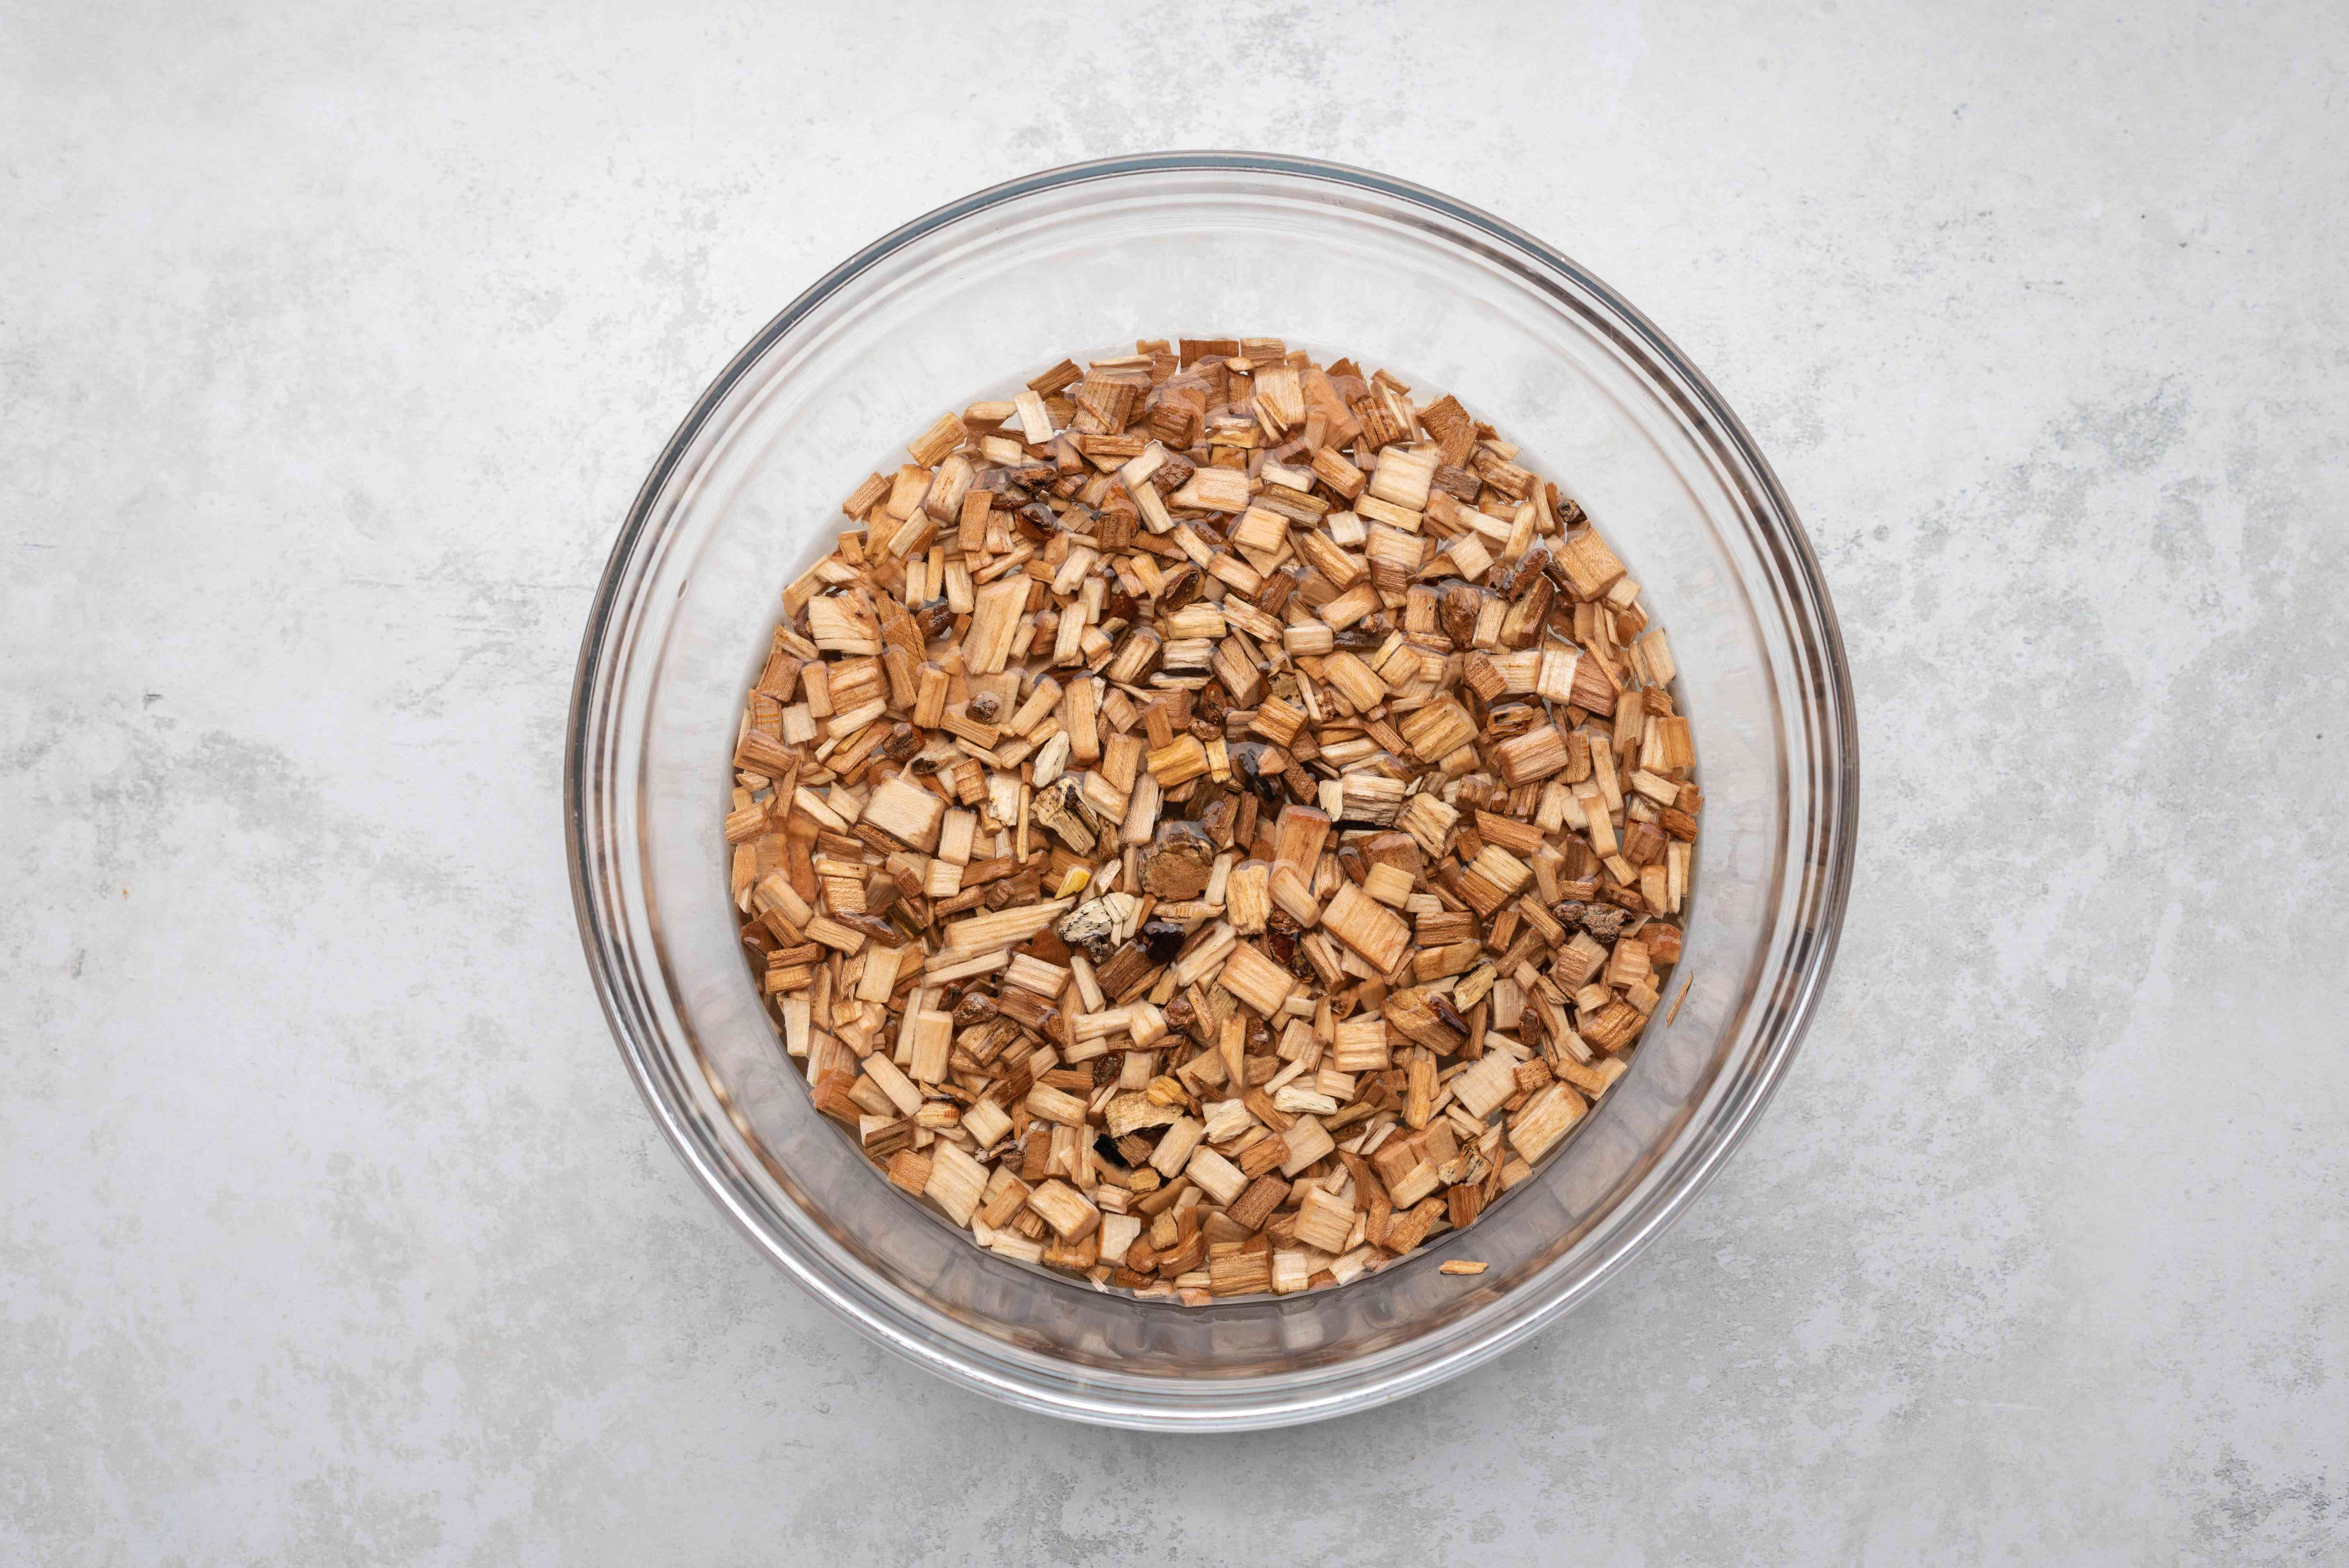 wood chips in a bowl with water